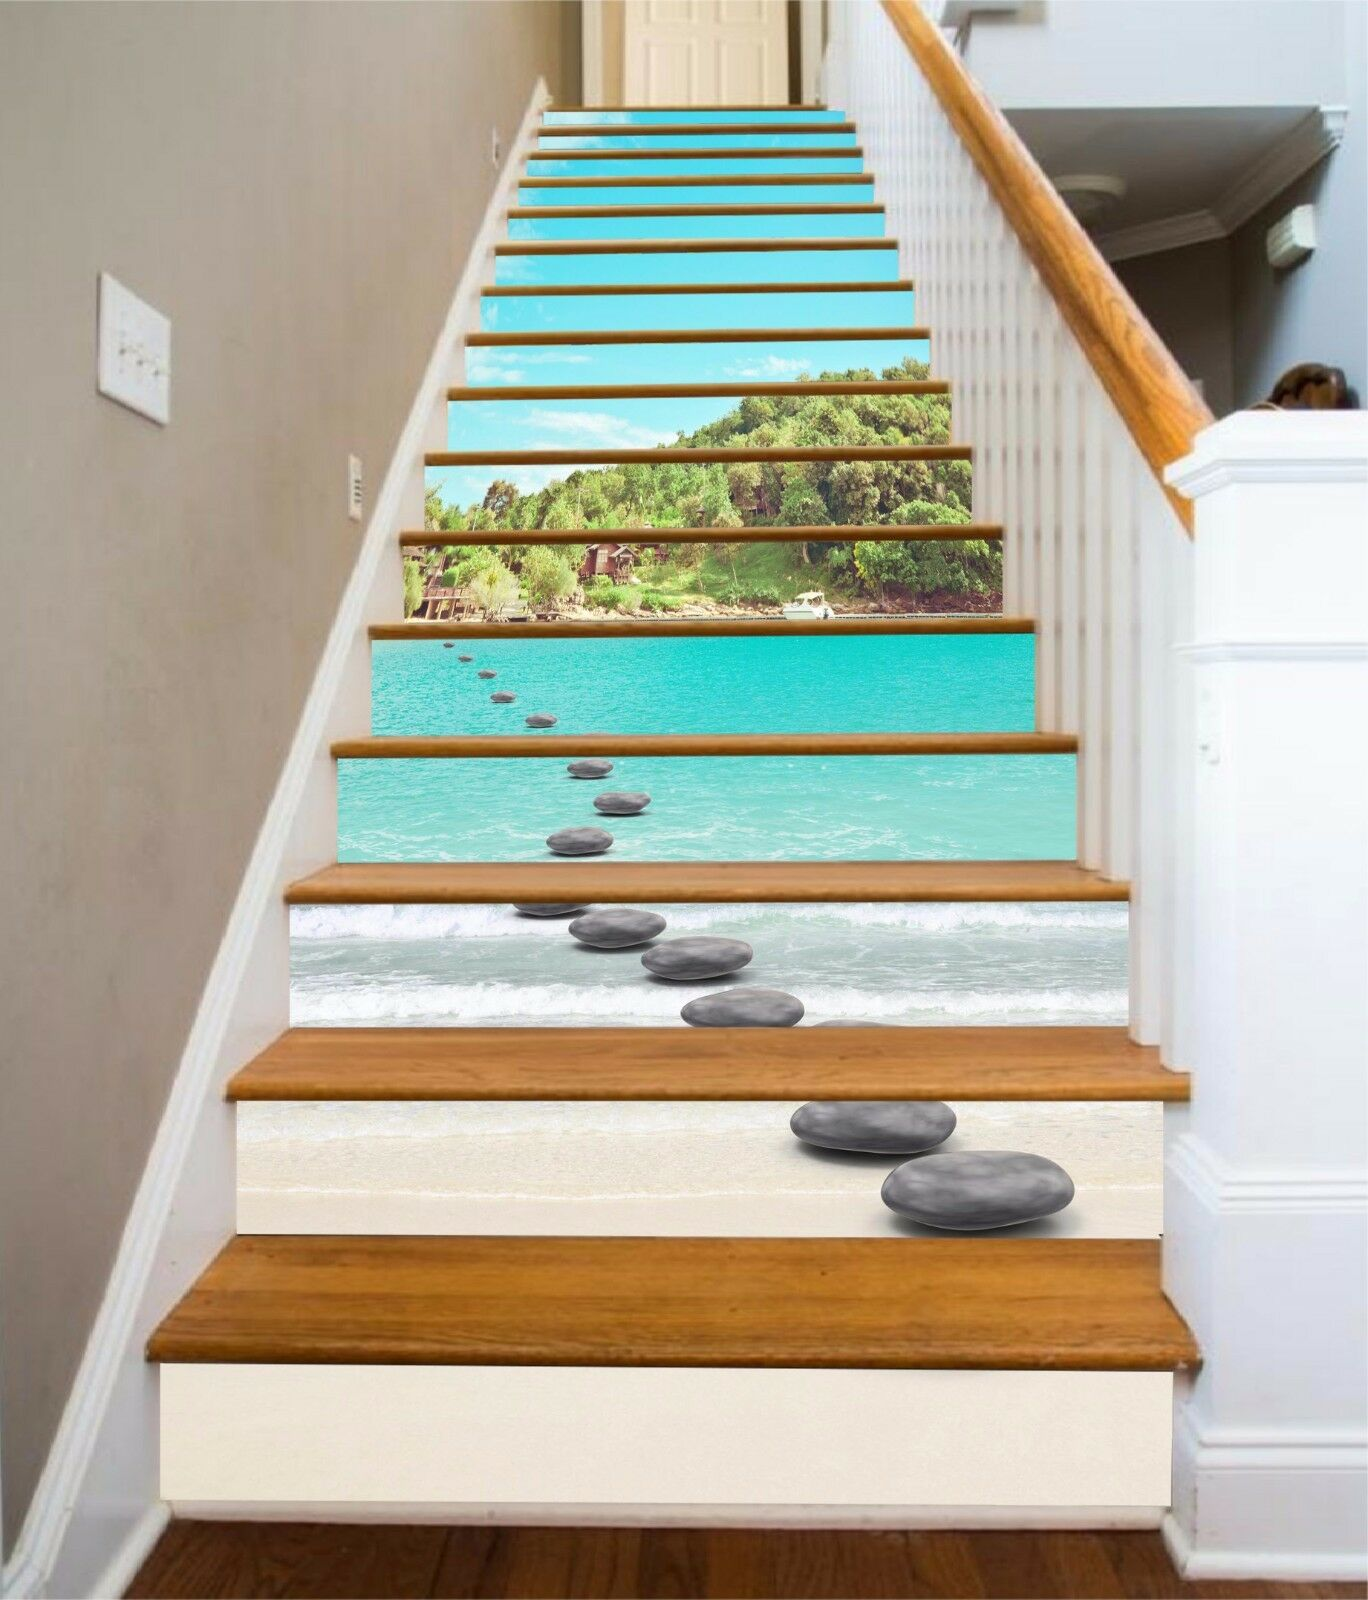 3D Sky ocean 3 Stair Risers Decoration Photo Mural Vinyl Decal Wallpaper UK